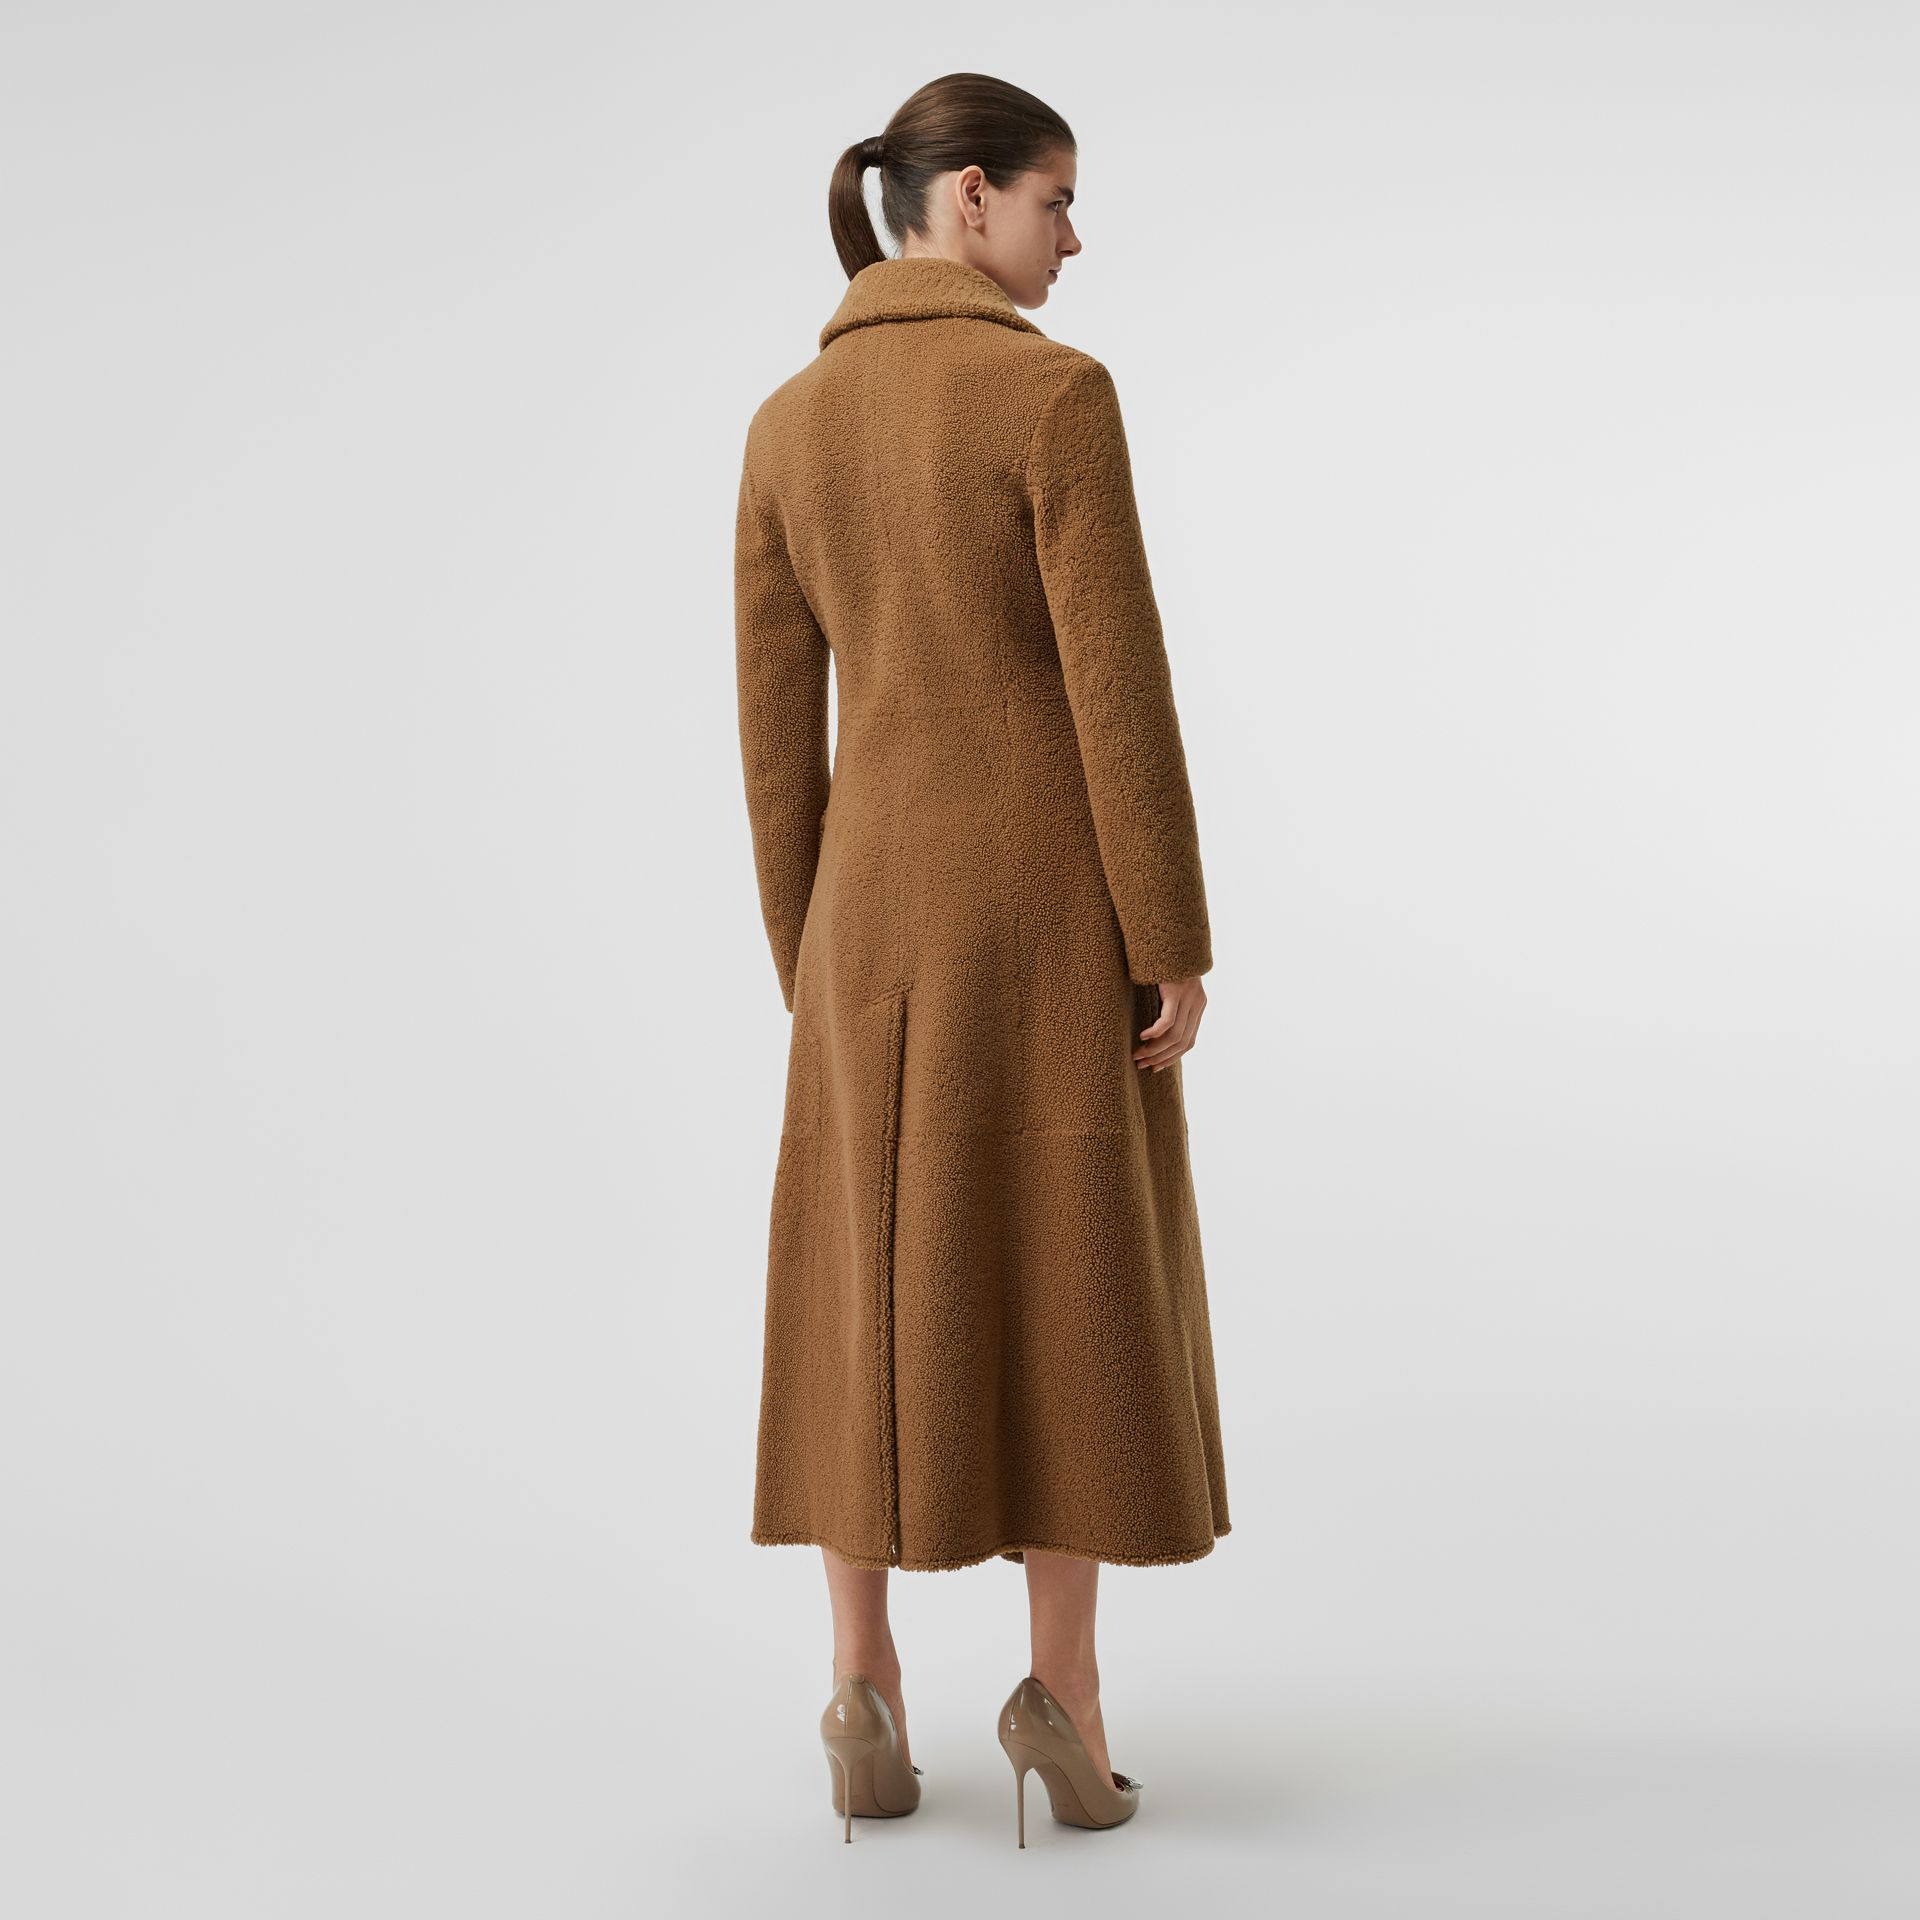 Shearling Tailored Coat in Caramel - Women | Burberry United Kingdom - gallery image 2